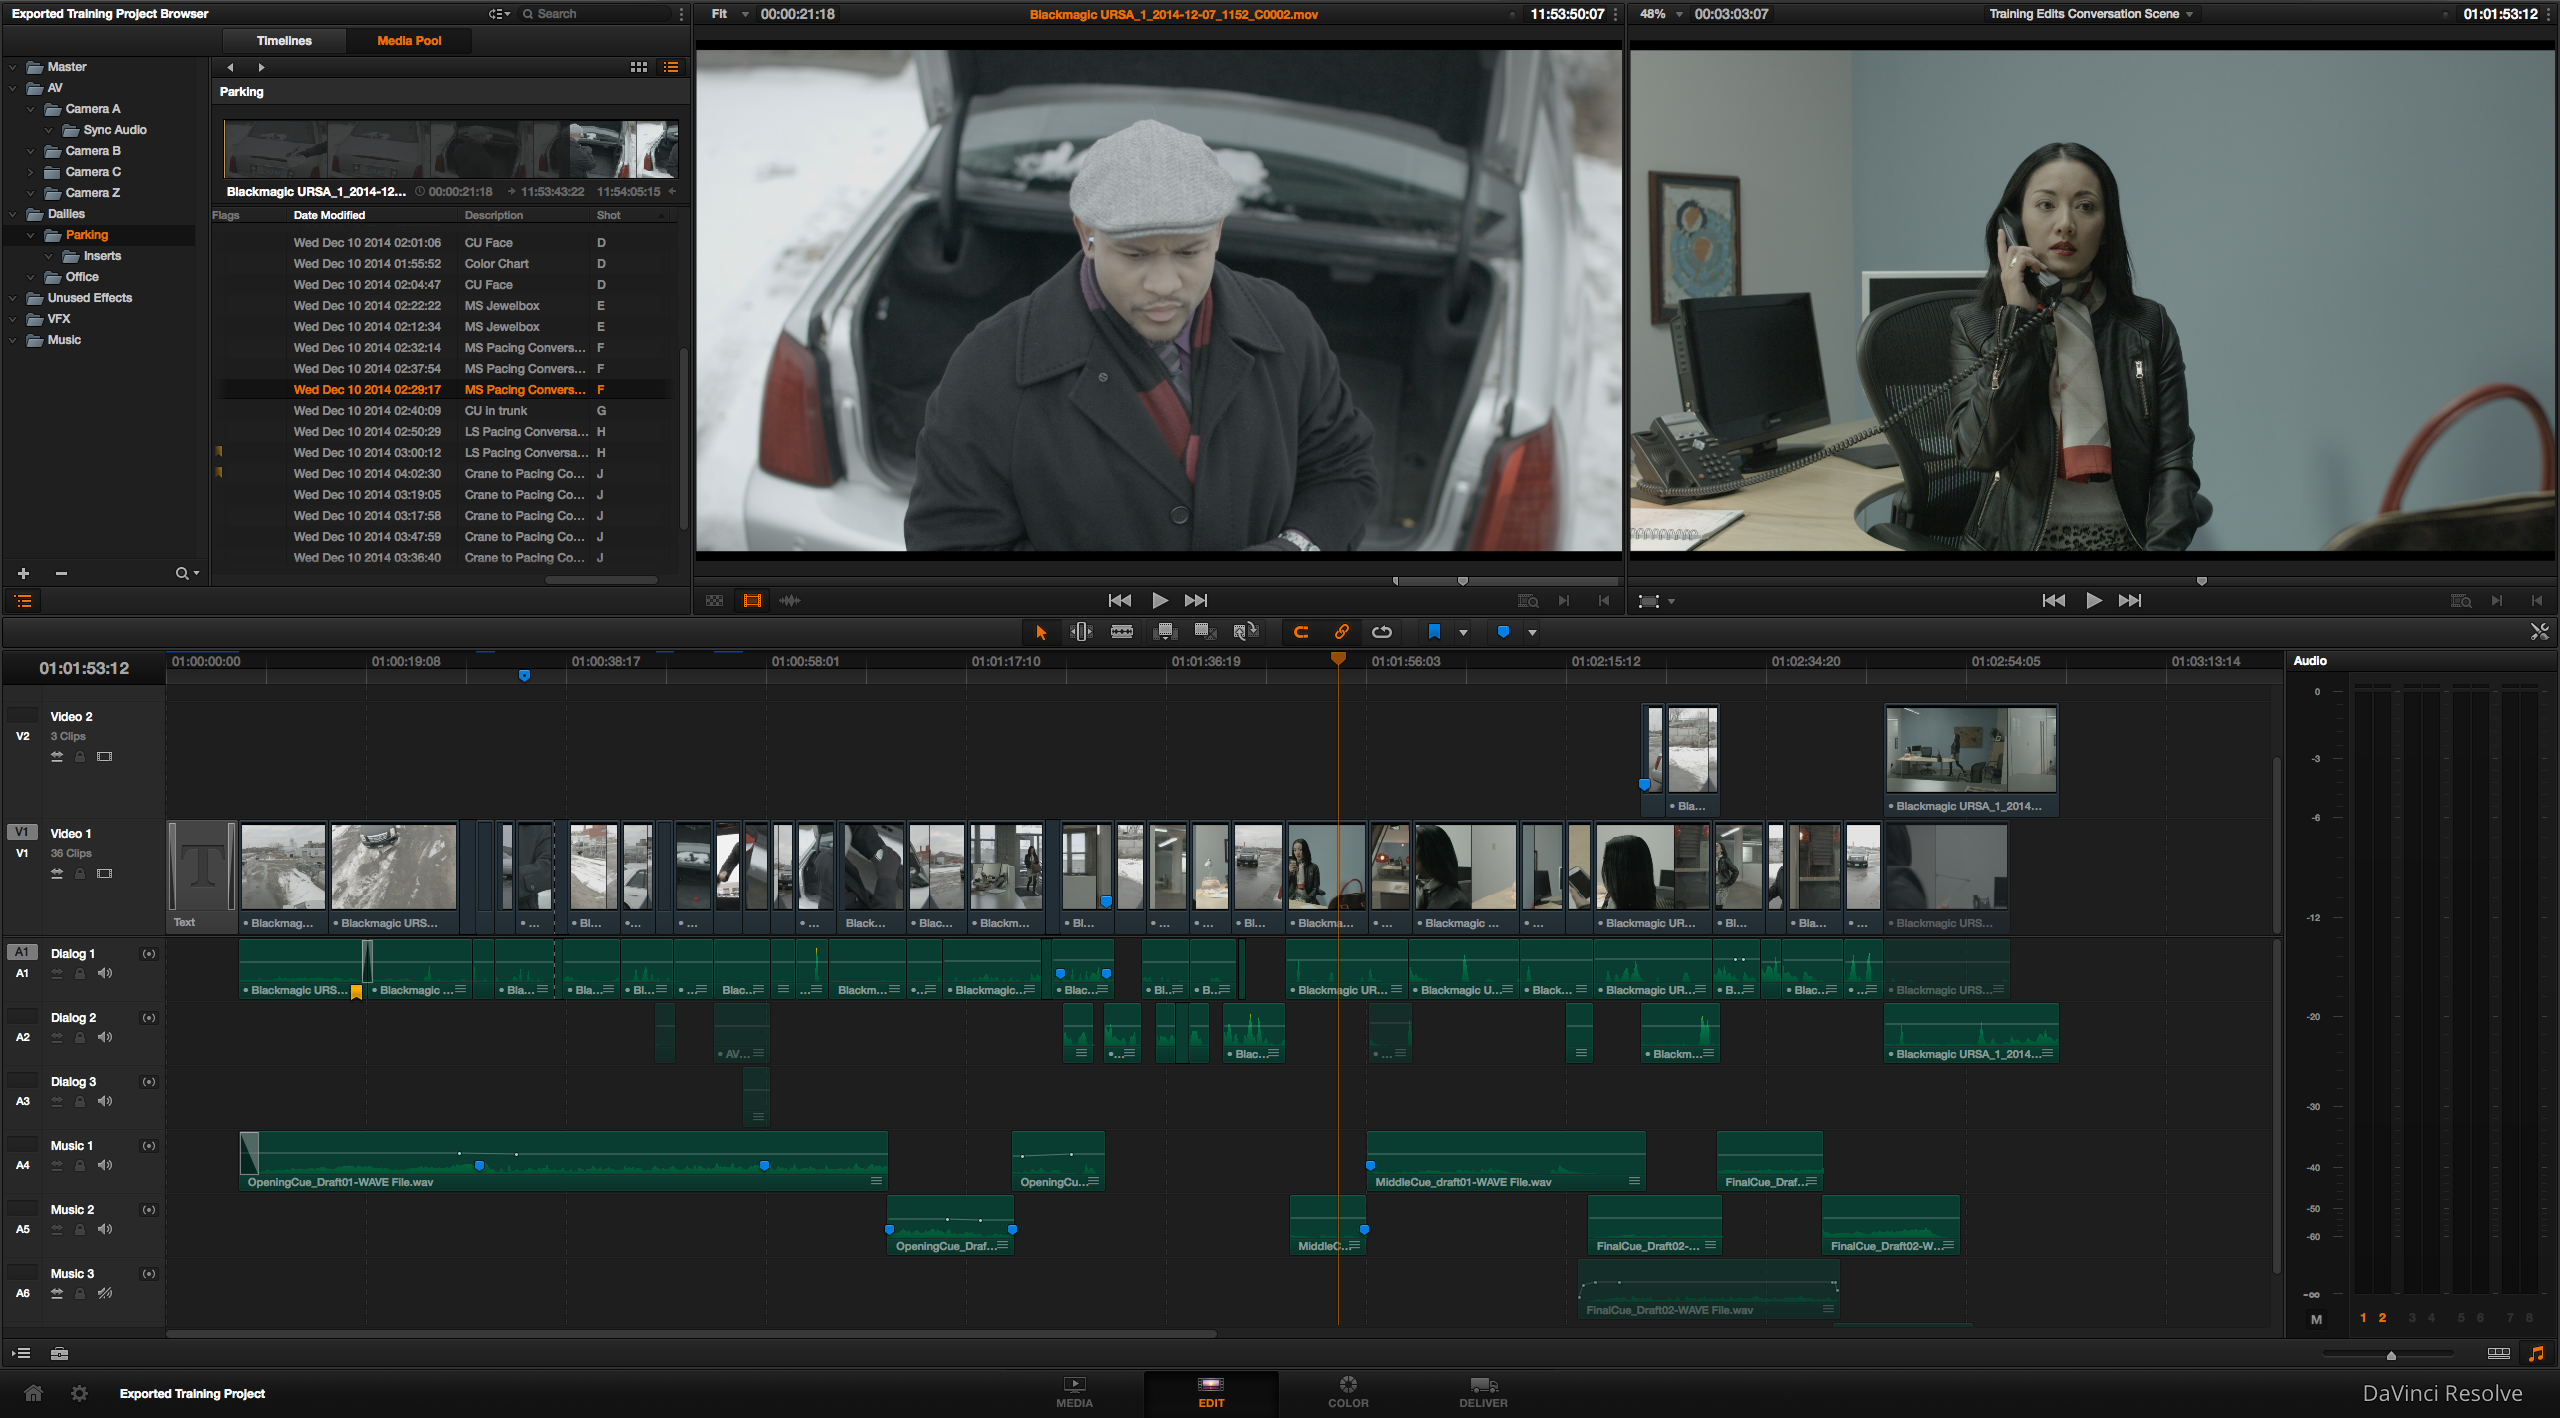 Editing in DaVinci Resolve